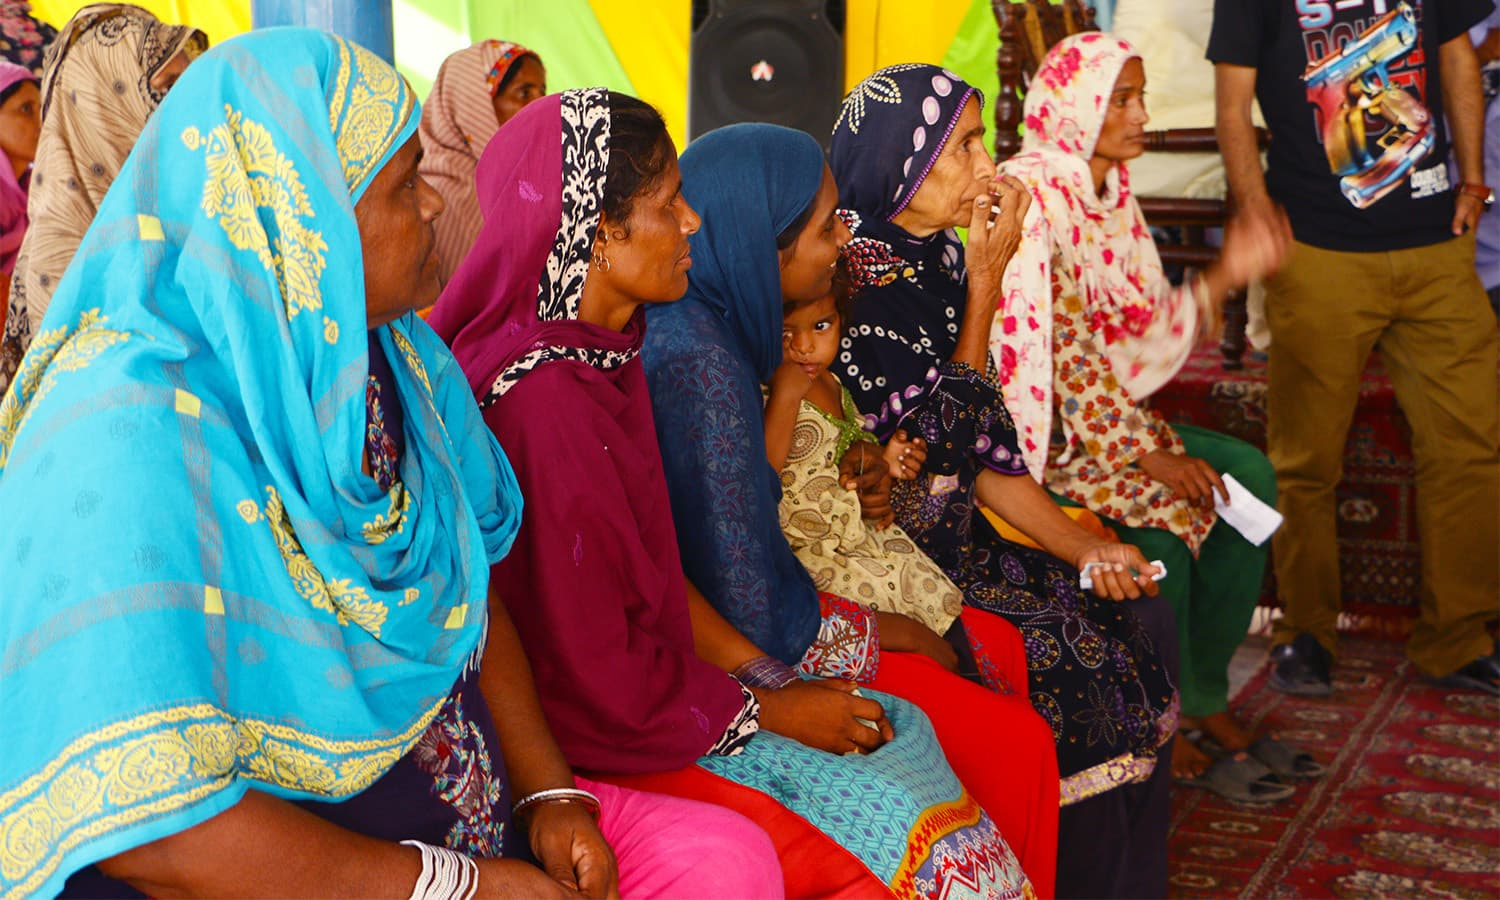 Women sat patiently as they waited for the distribution of Eid supplies.